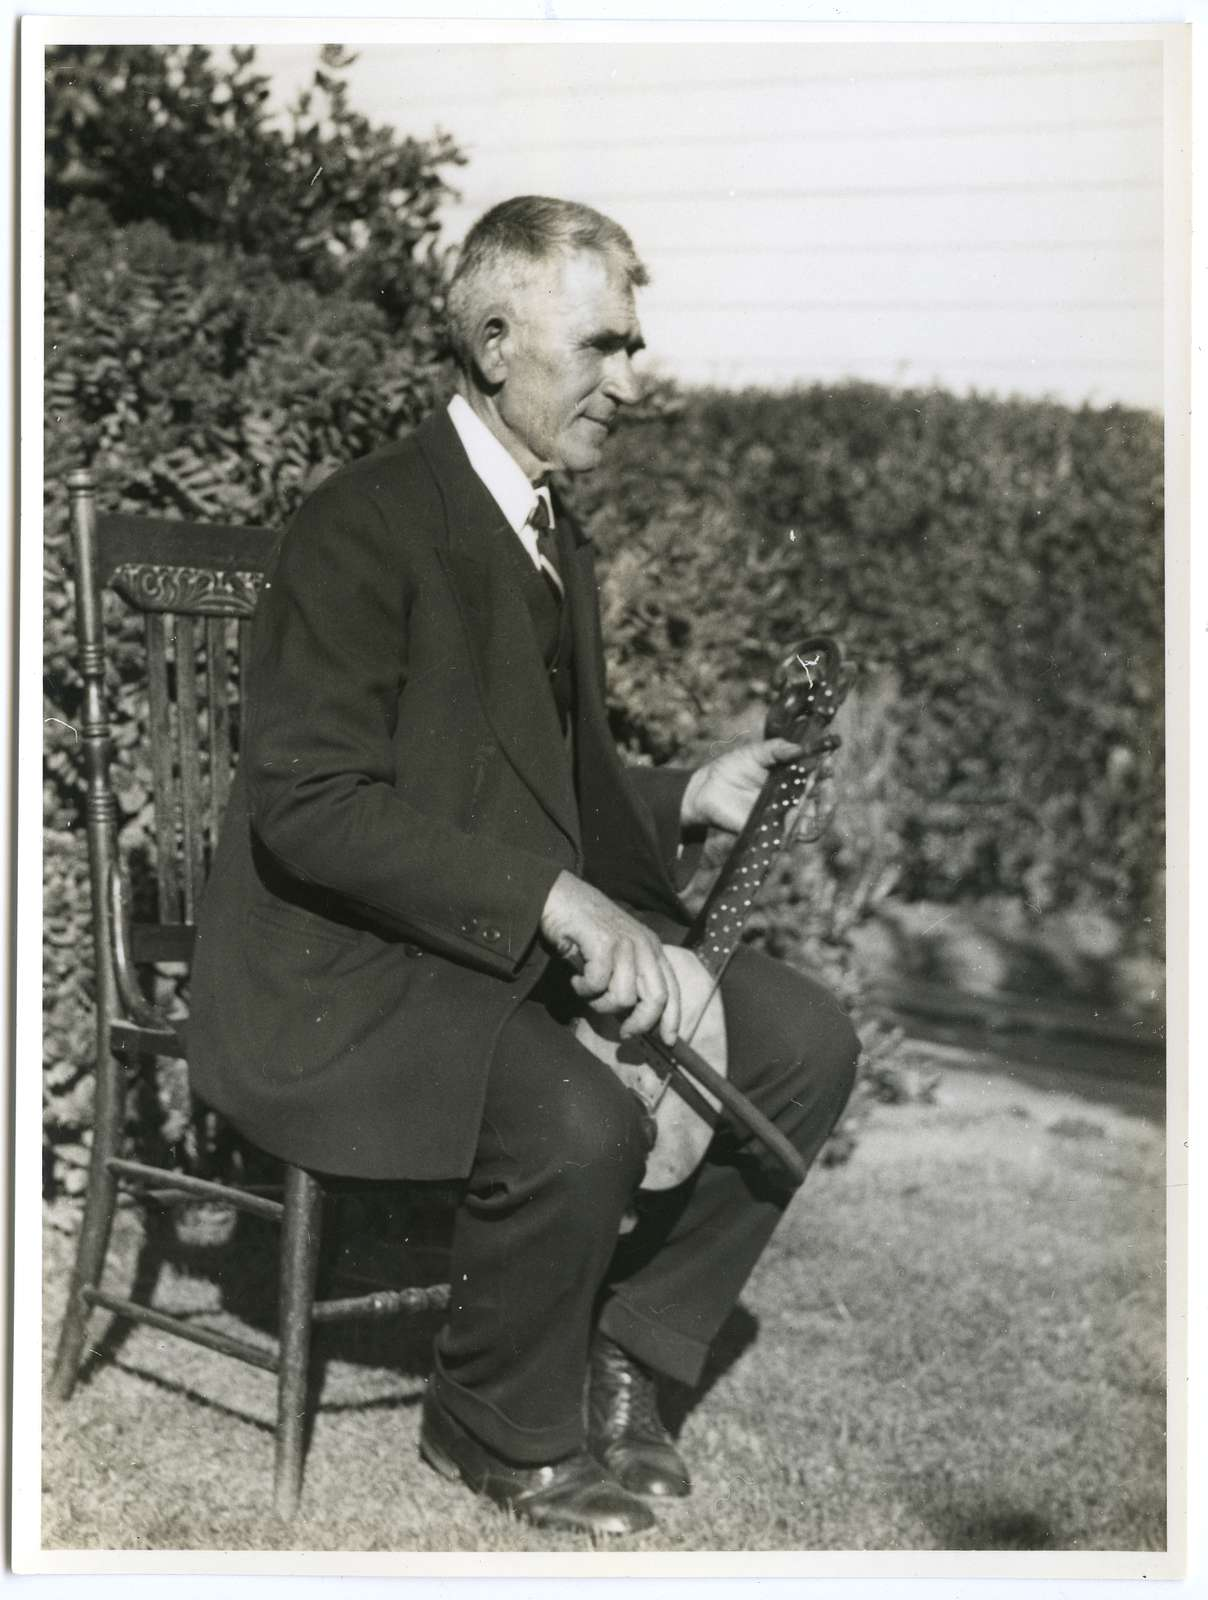 Peter Boro playing gusle, seated, right profile, portrait, photograph